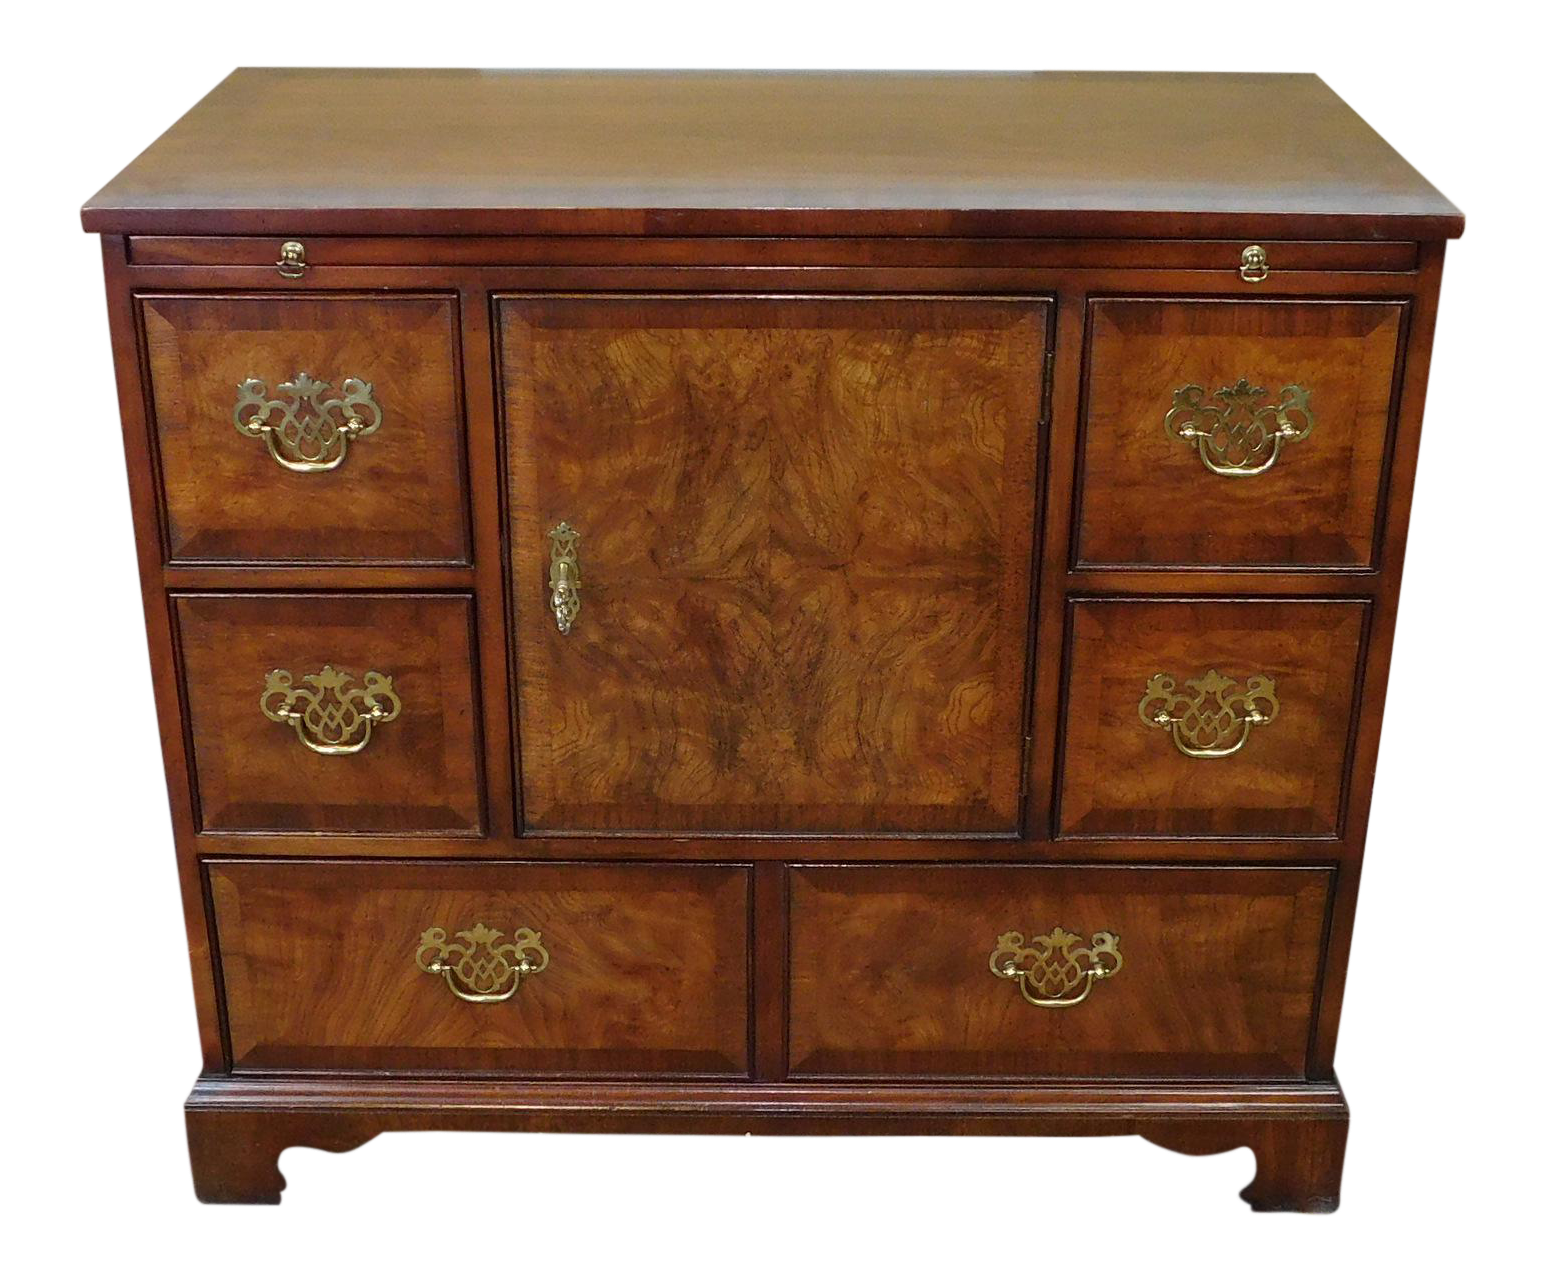 Fine Kindel Furniture Gany Elm Dining Room Cabinet Server 1990s Chairish